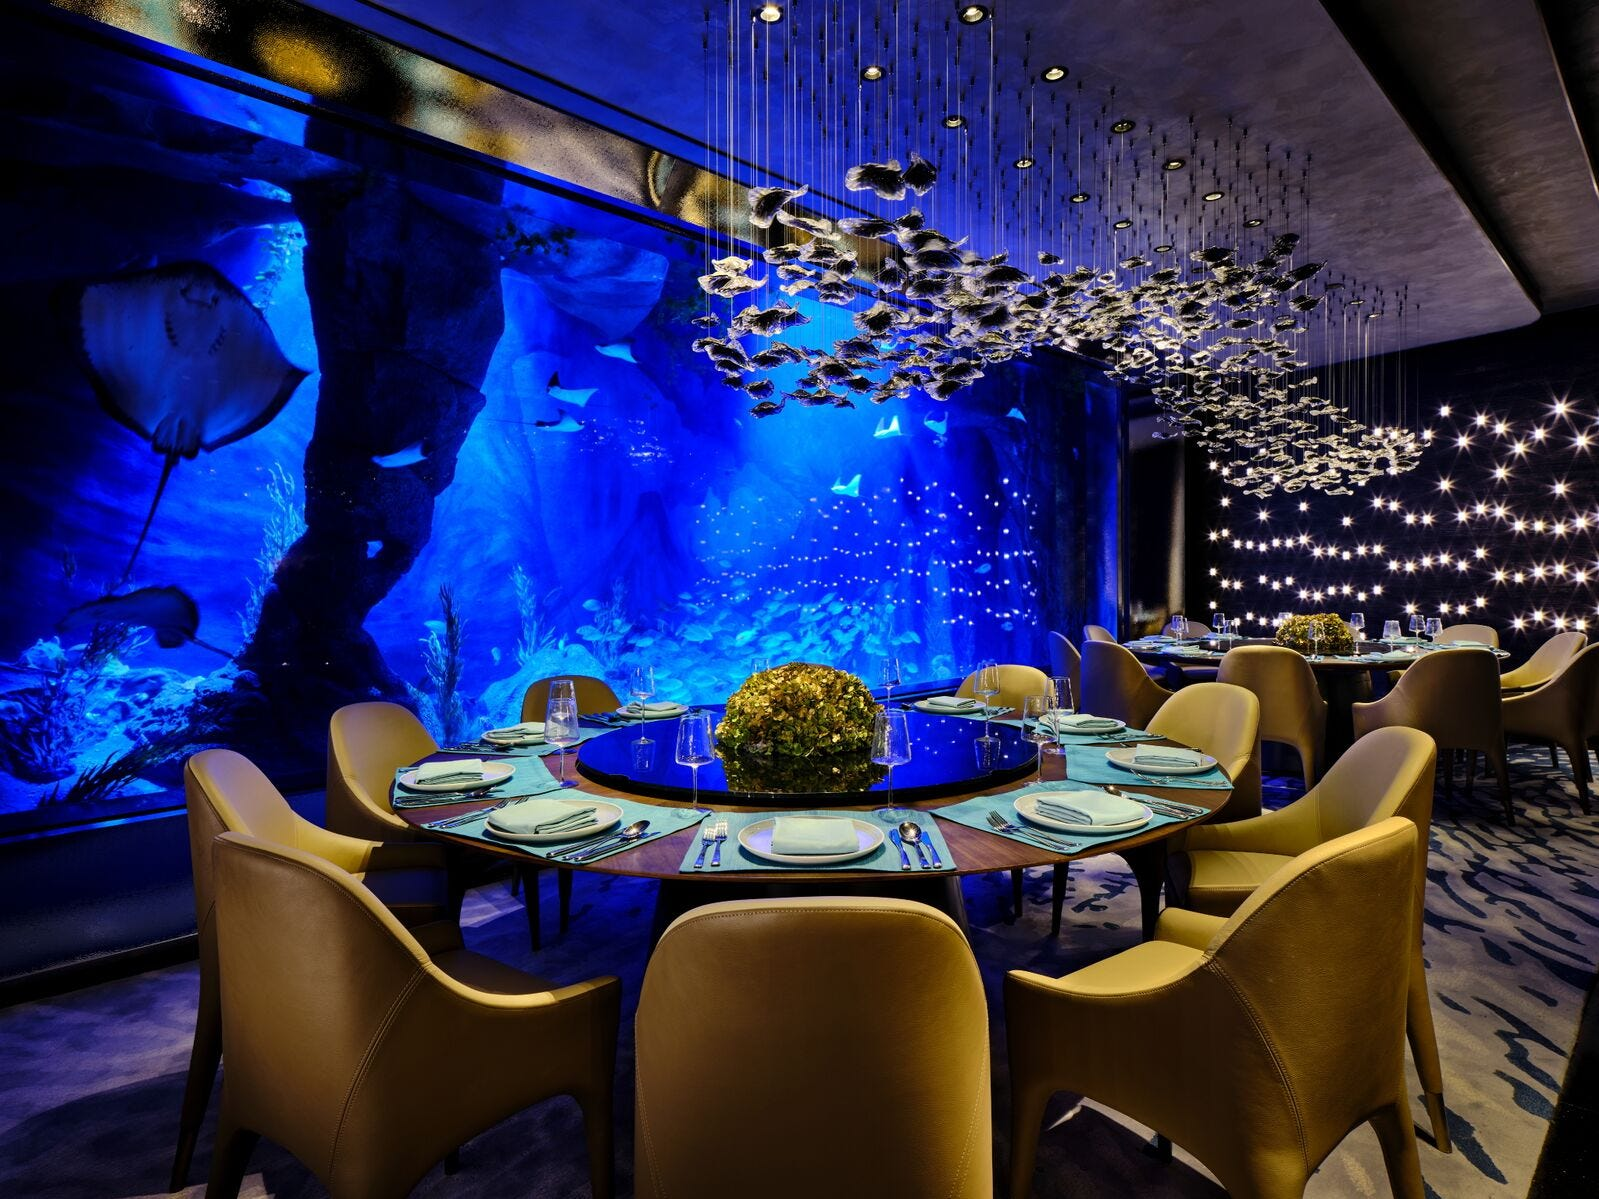 Remember those underwater floors? That's where Mr. Fisher, the seafood restaurant, entertains guests with an aquamarine display from its aquarium. Its design is meant to look like a crystal cave formed from the erosion of running water.